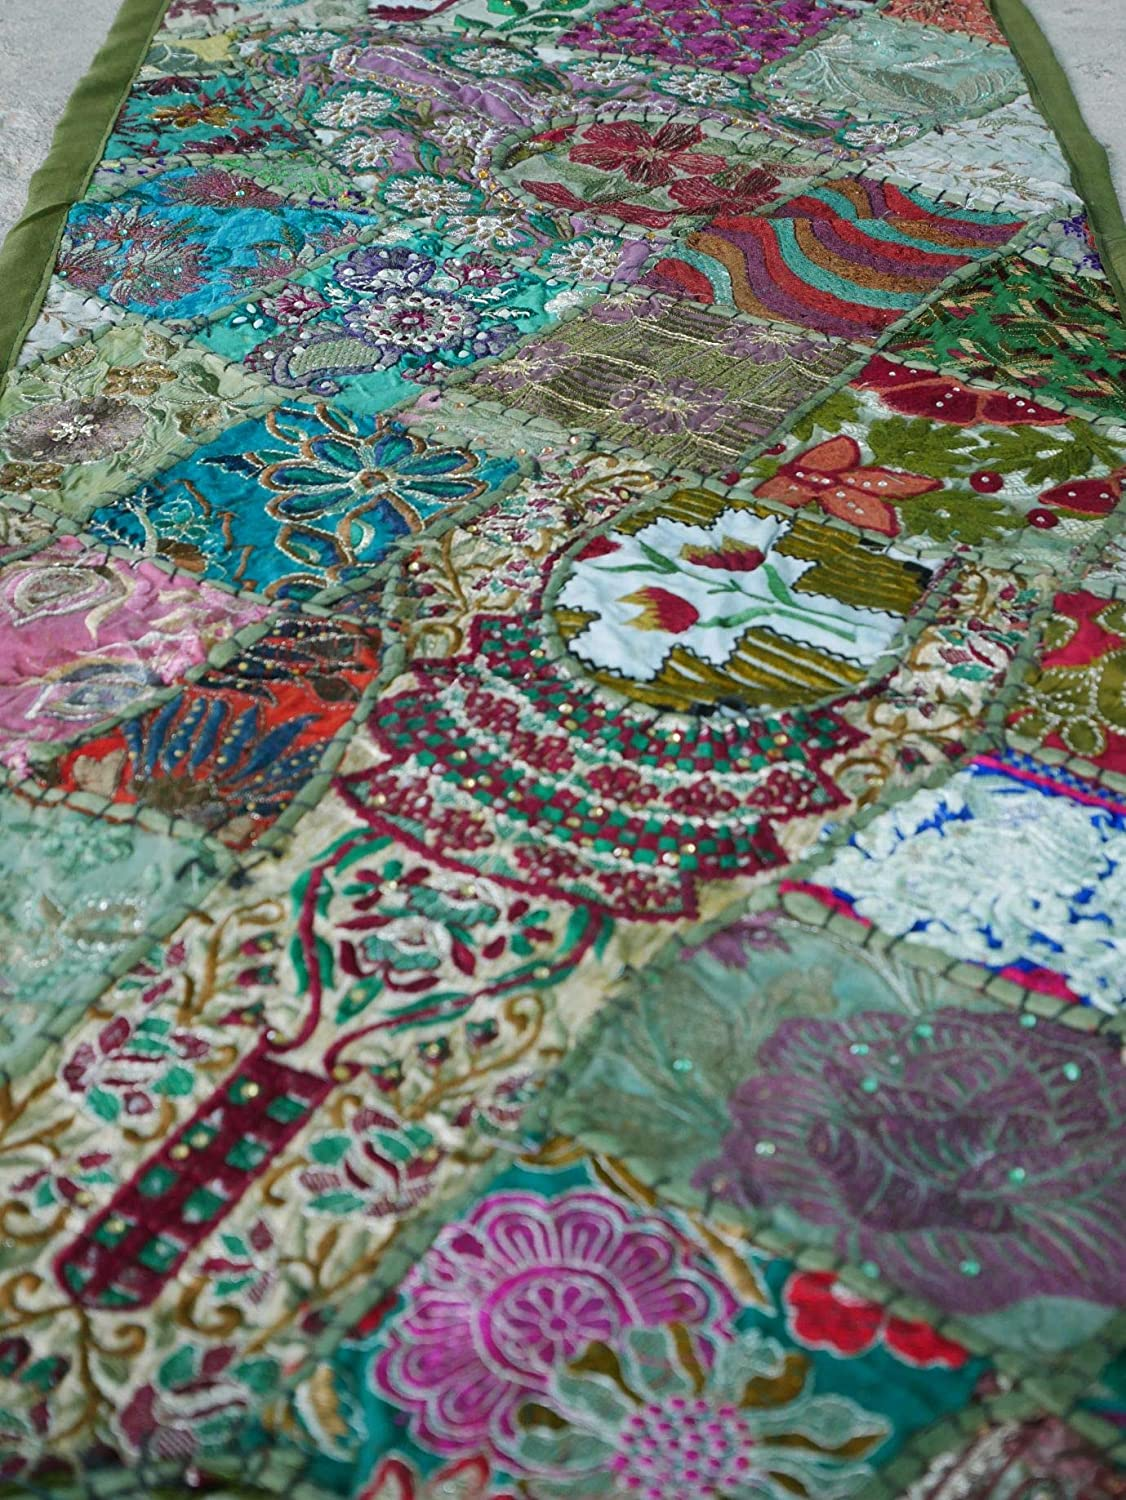 Shanti Gypsy - Wall tapestry, Boho wall hanging, table runner made of vintage sarees for hippie wall decor, bohemian decor